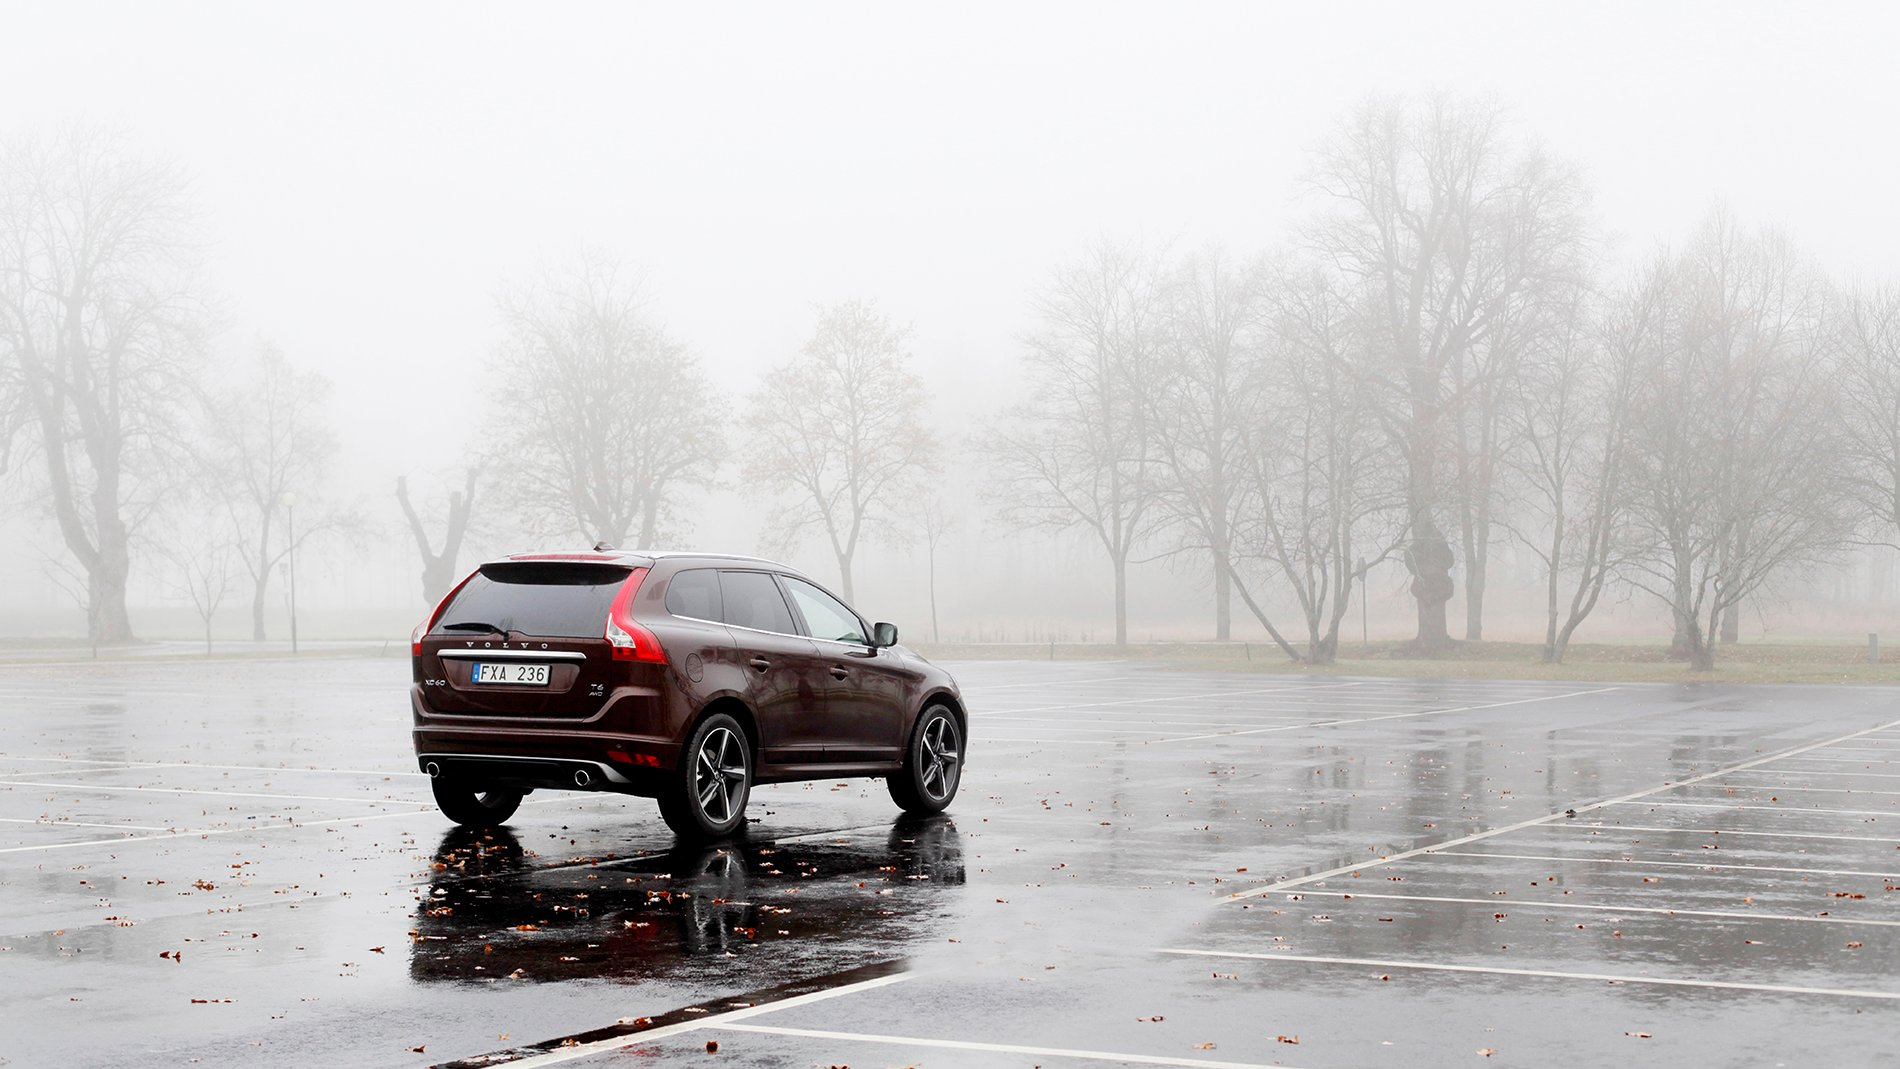 Volvo XC60 on an empty parking lot on a grey rainy day